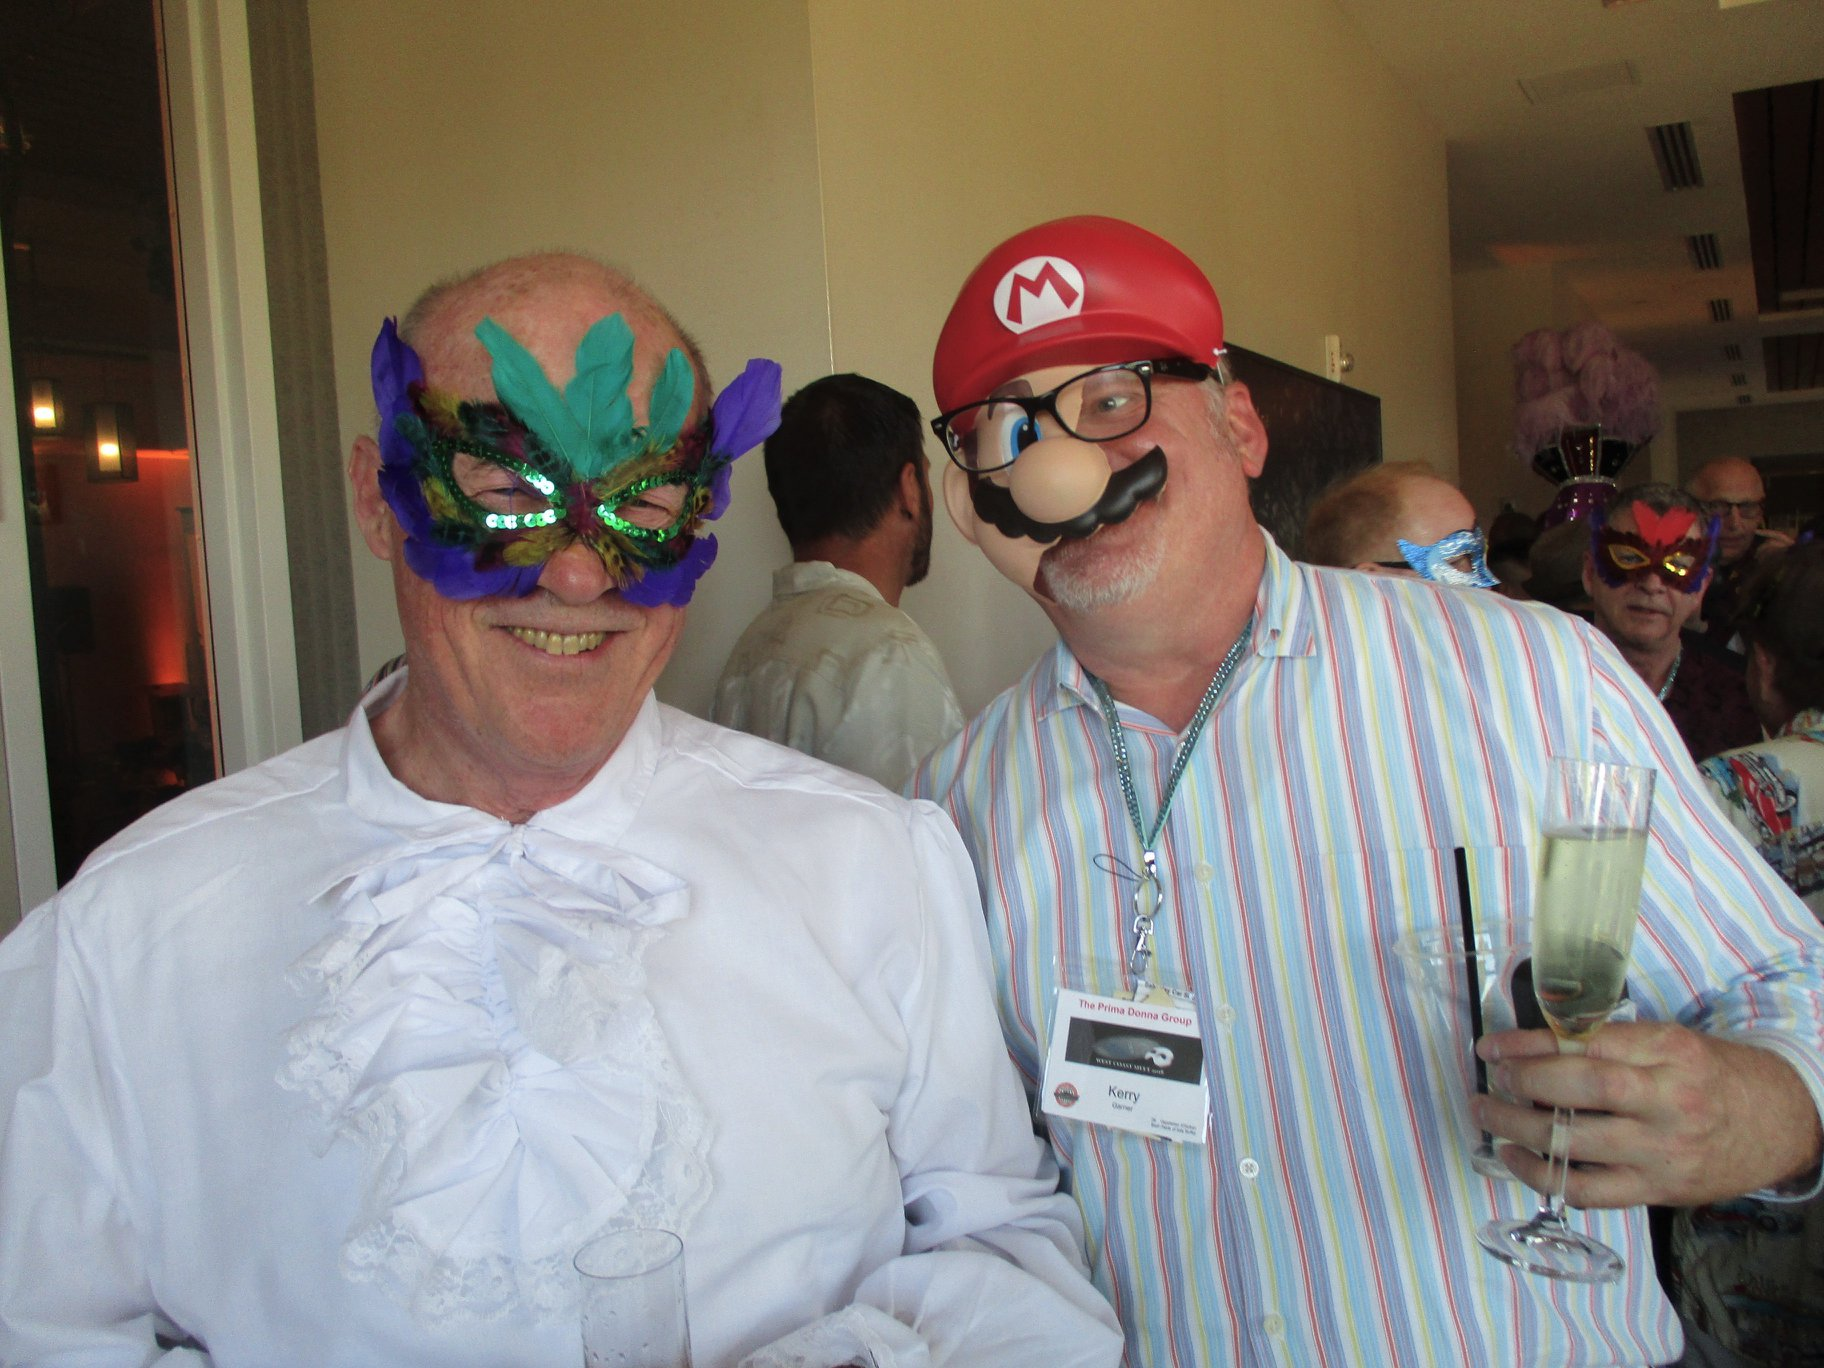 Masquerade Ball - Jay and Mario Brothers